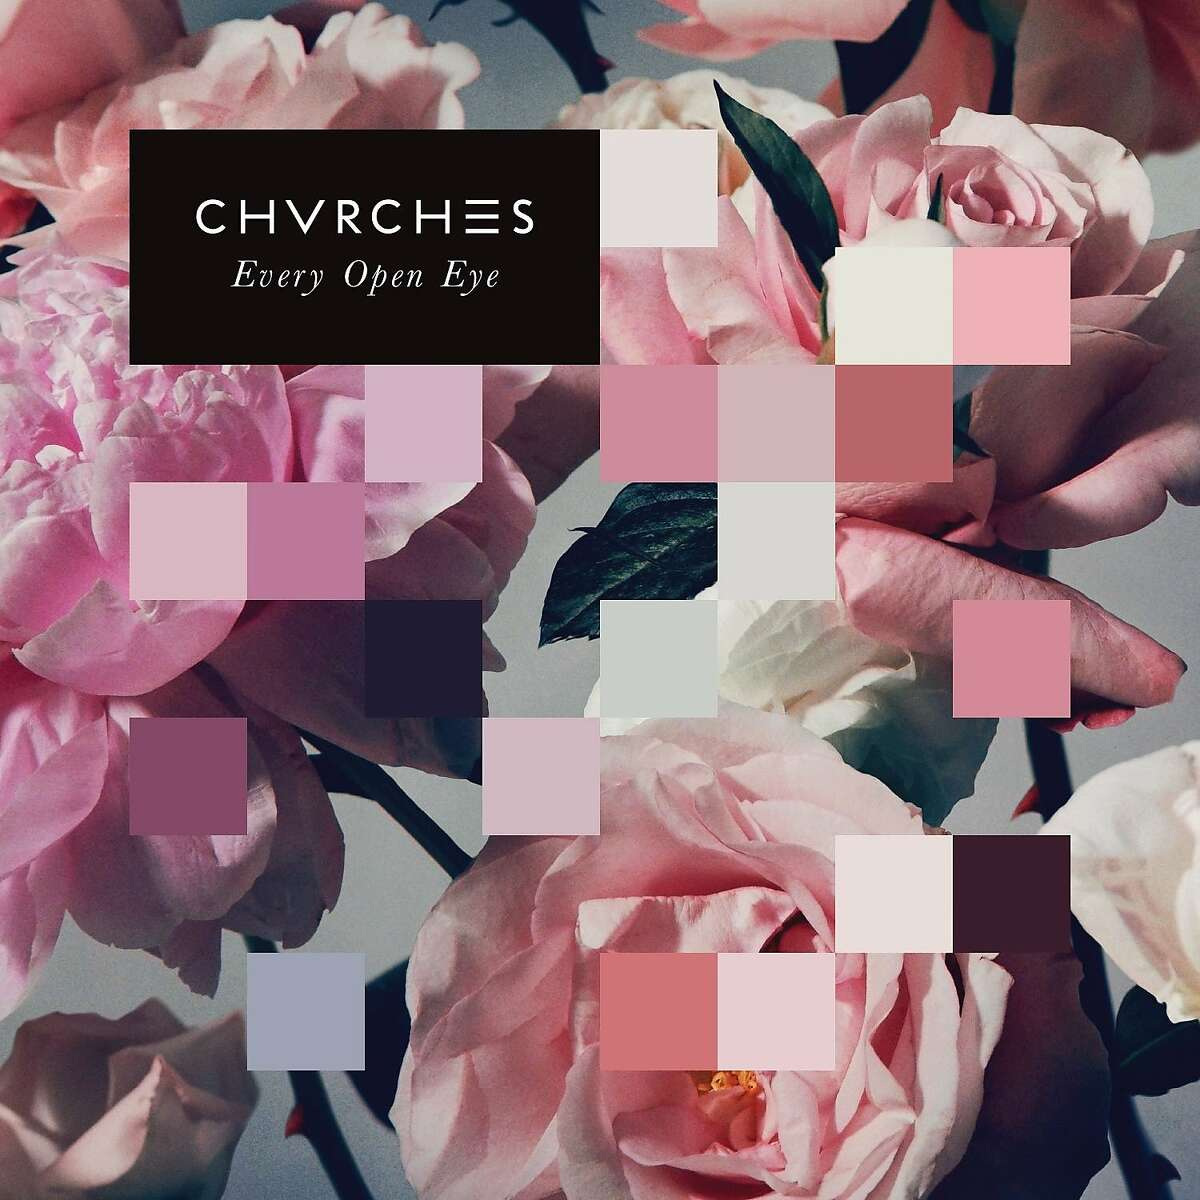 Chvrches, 'Every Open Eye'